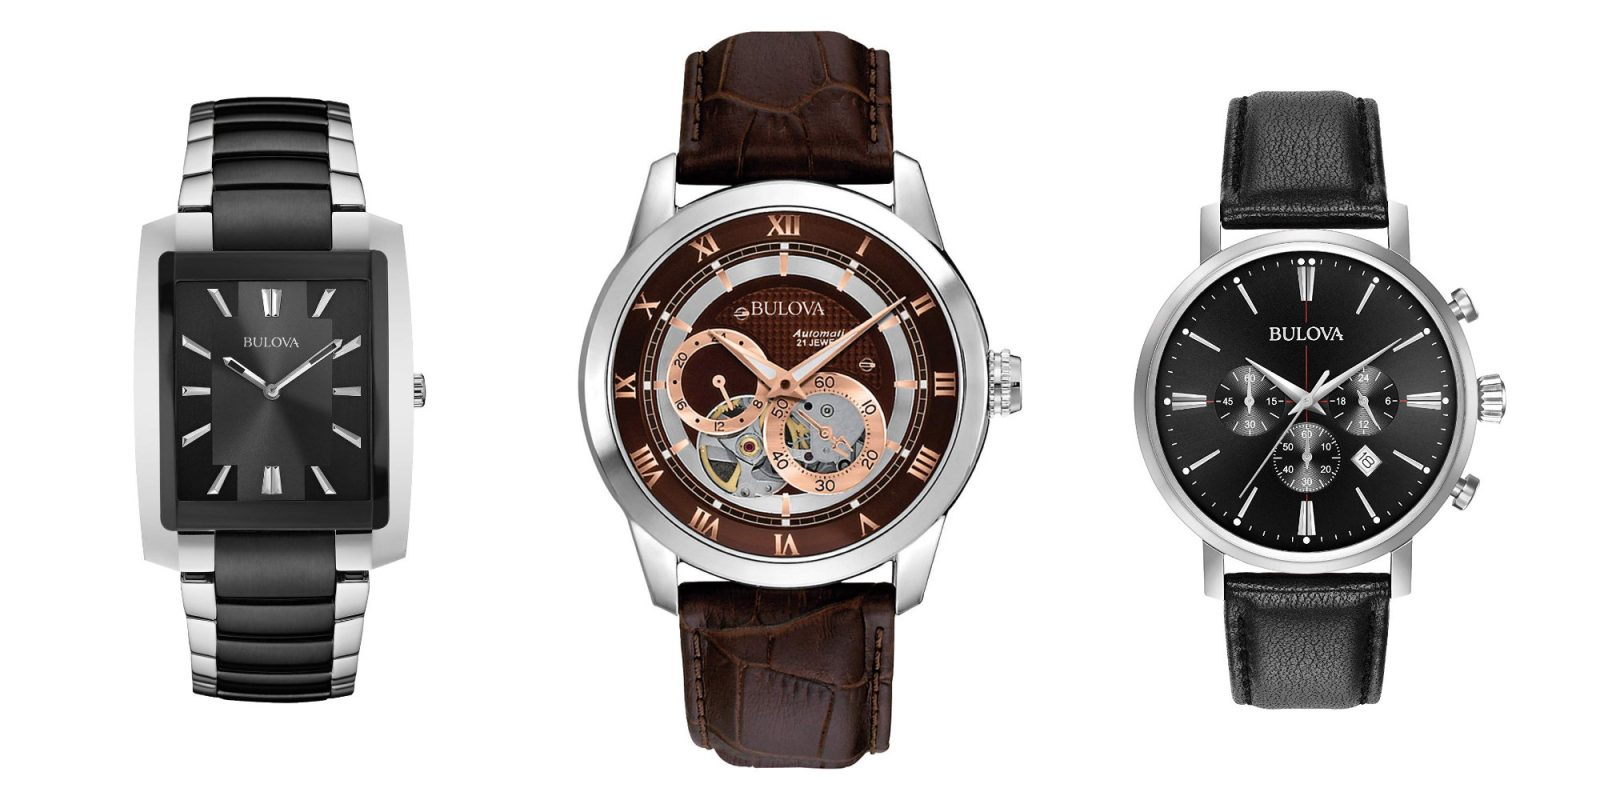 Bulova's stylish $160 watch is movement-powered, more at up to 70% off